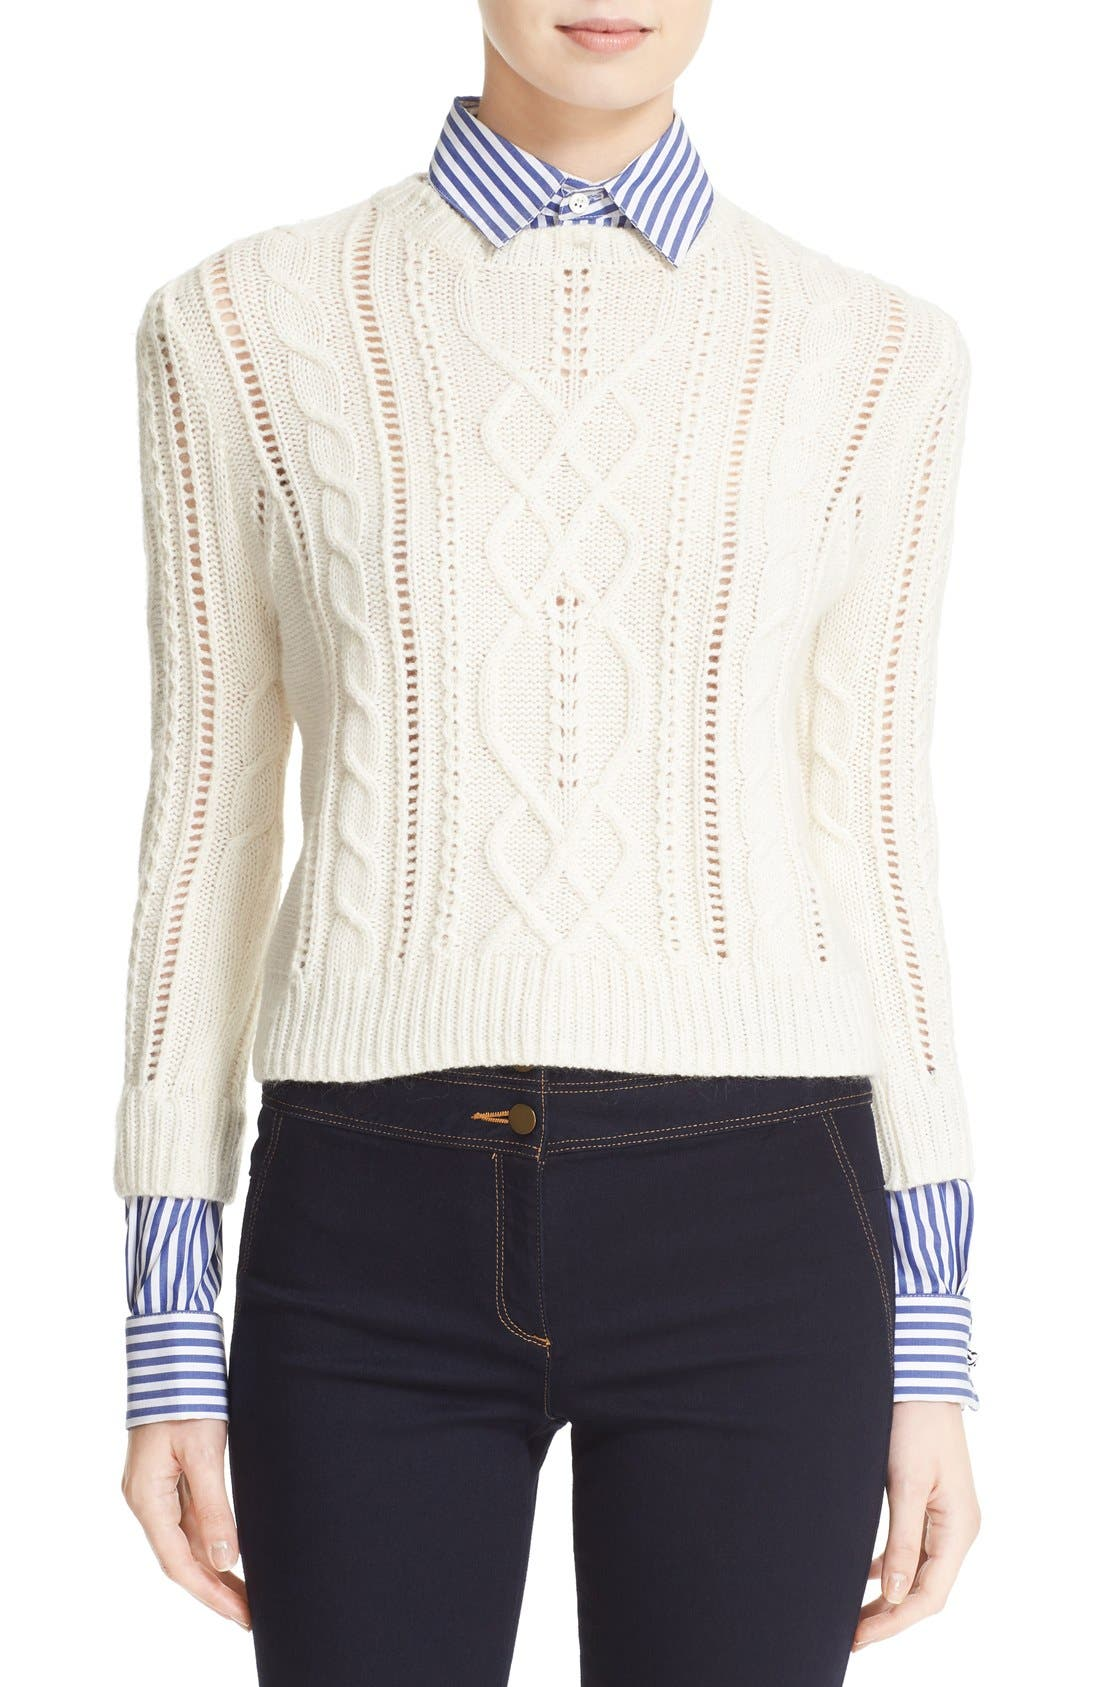 Storybook sweater with removable collar and cuffs